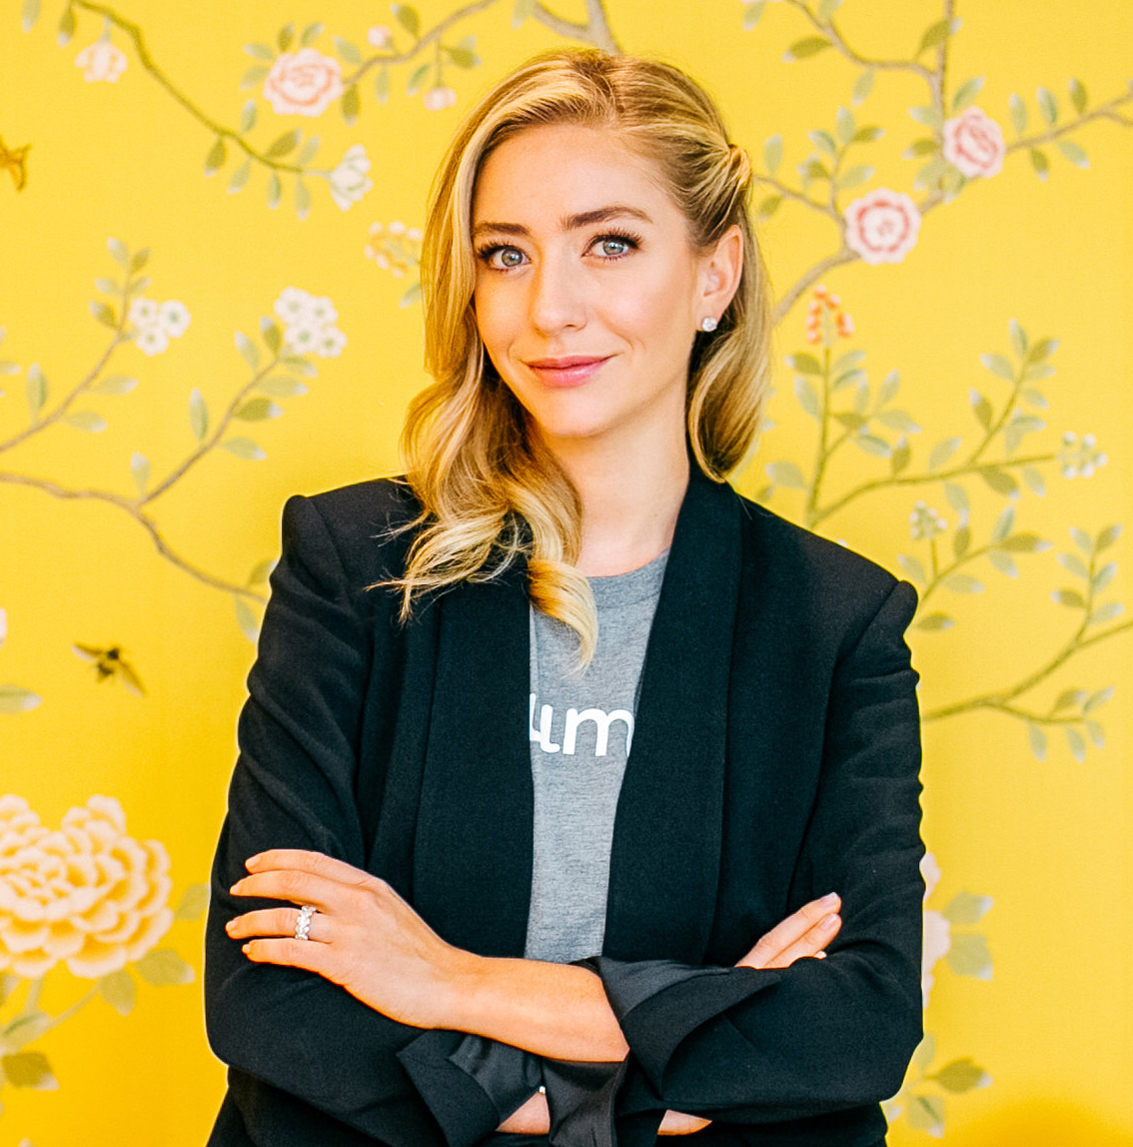 The Woman Behind Bumble